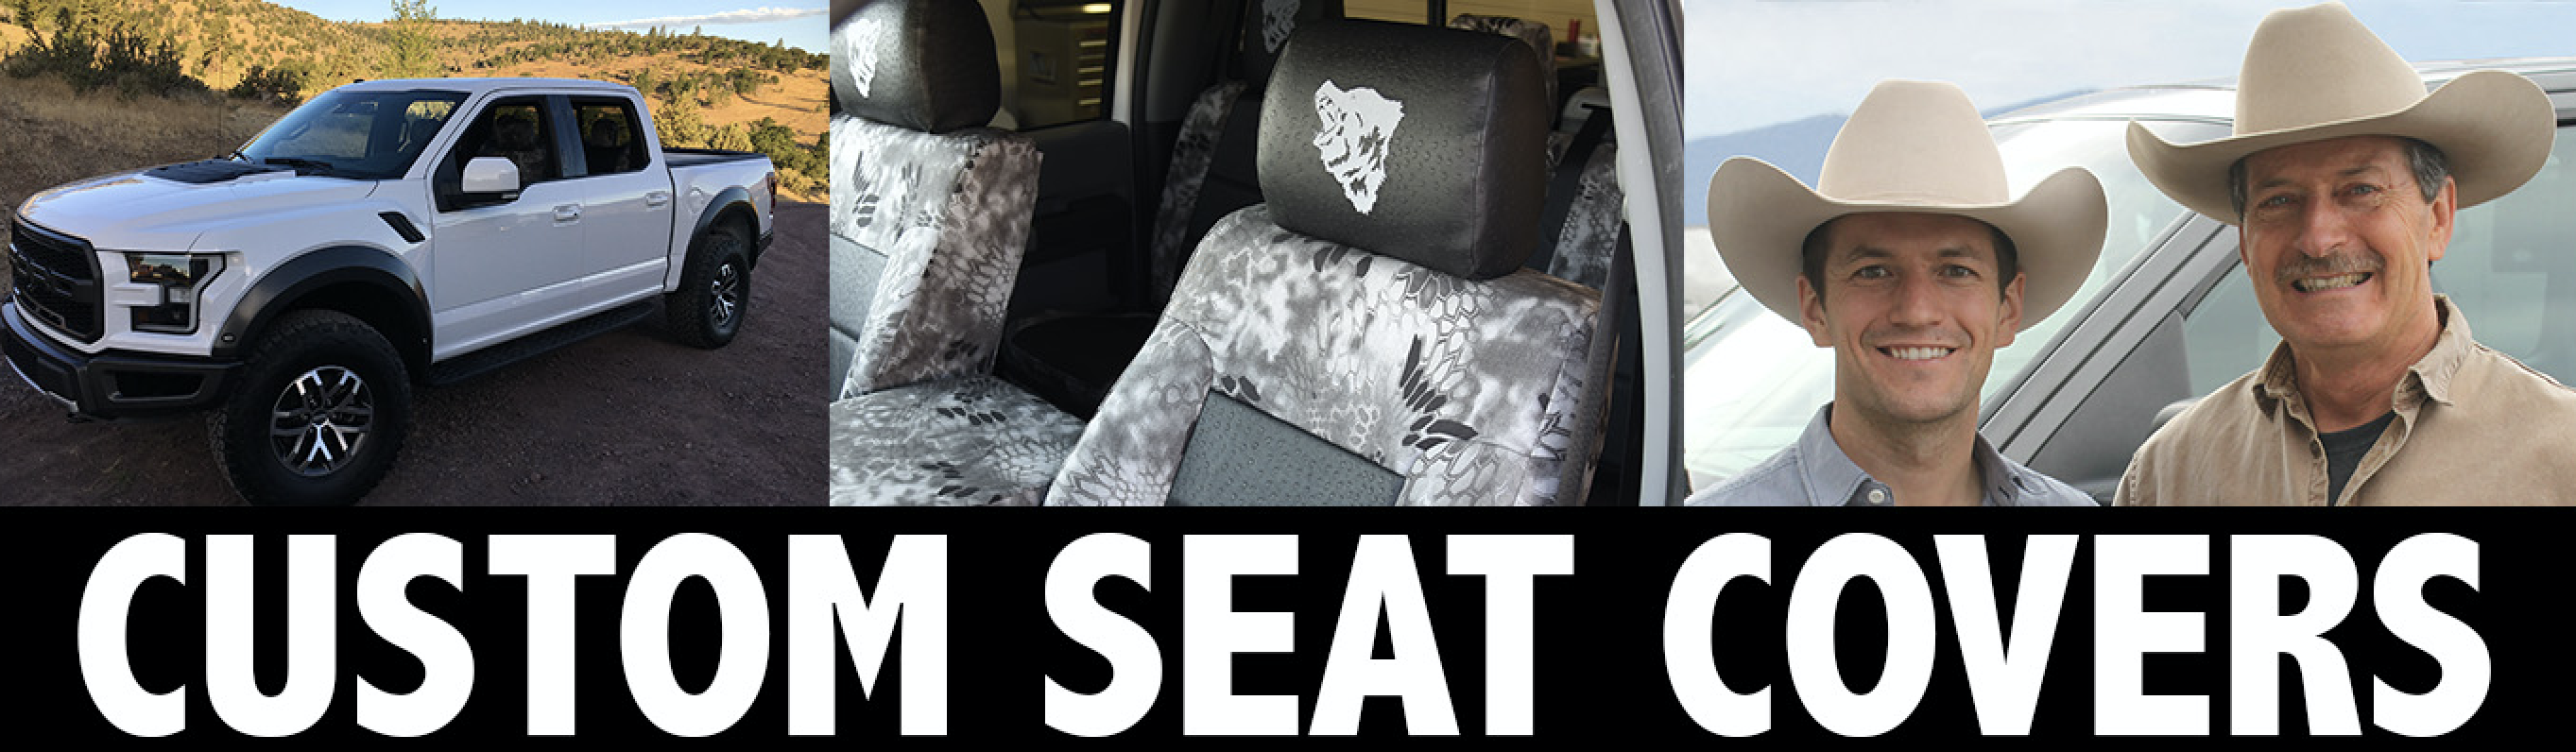 Custom seat covers with two cowboys and Ford F-150 Raptor and kryptek raid camo seat covers